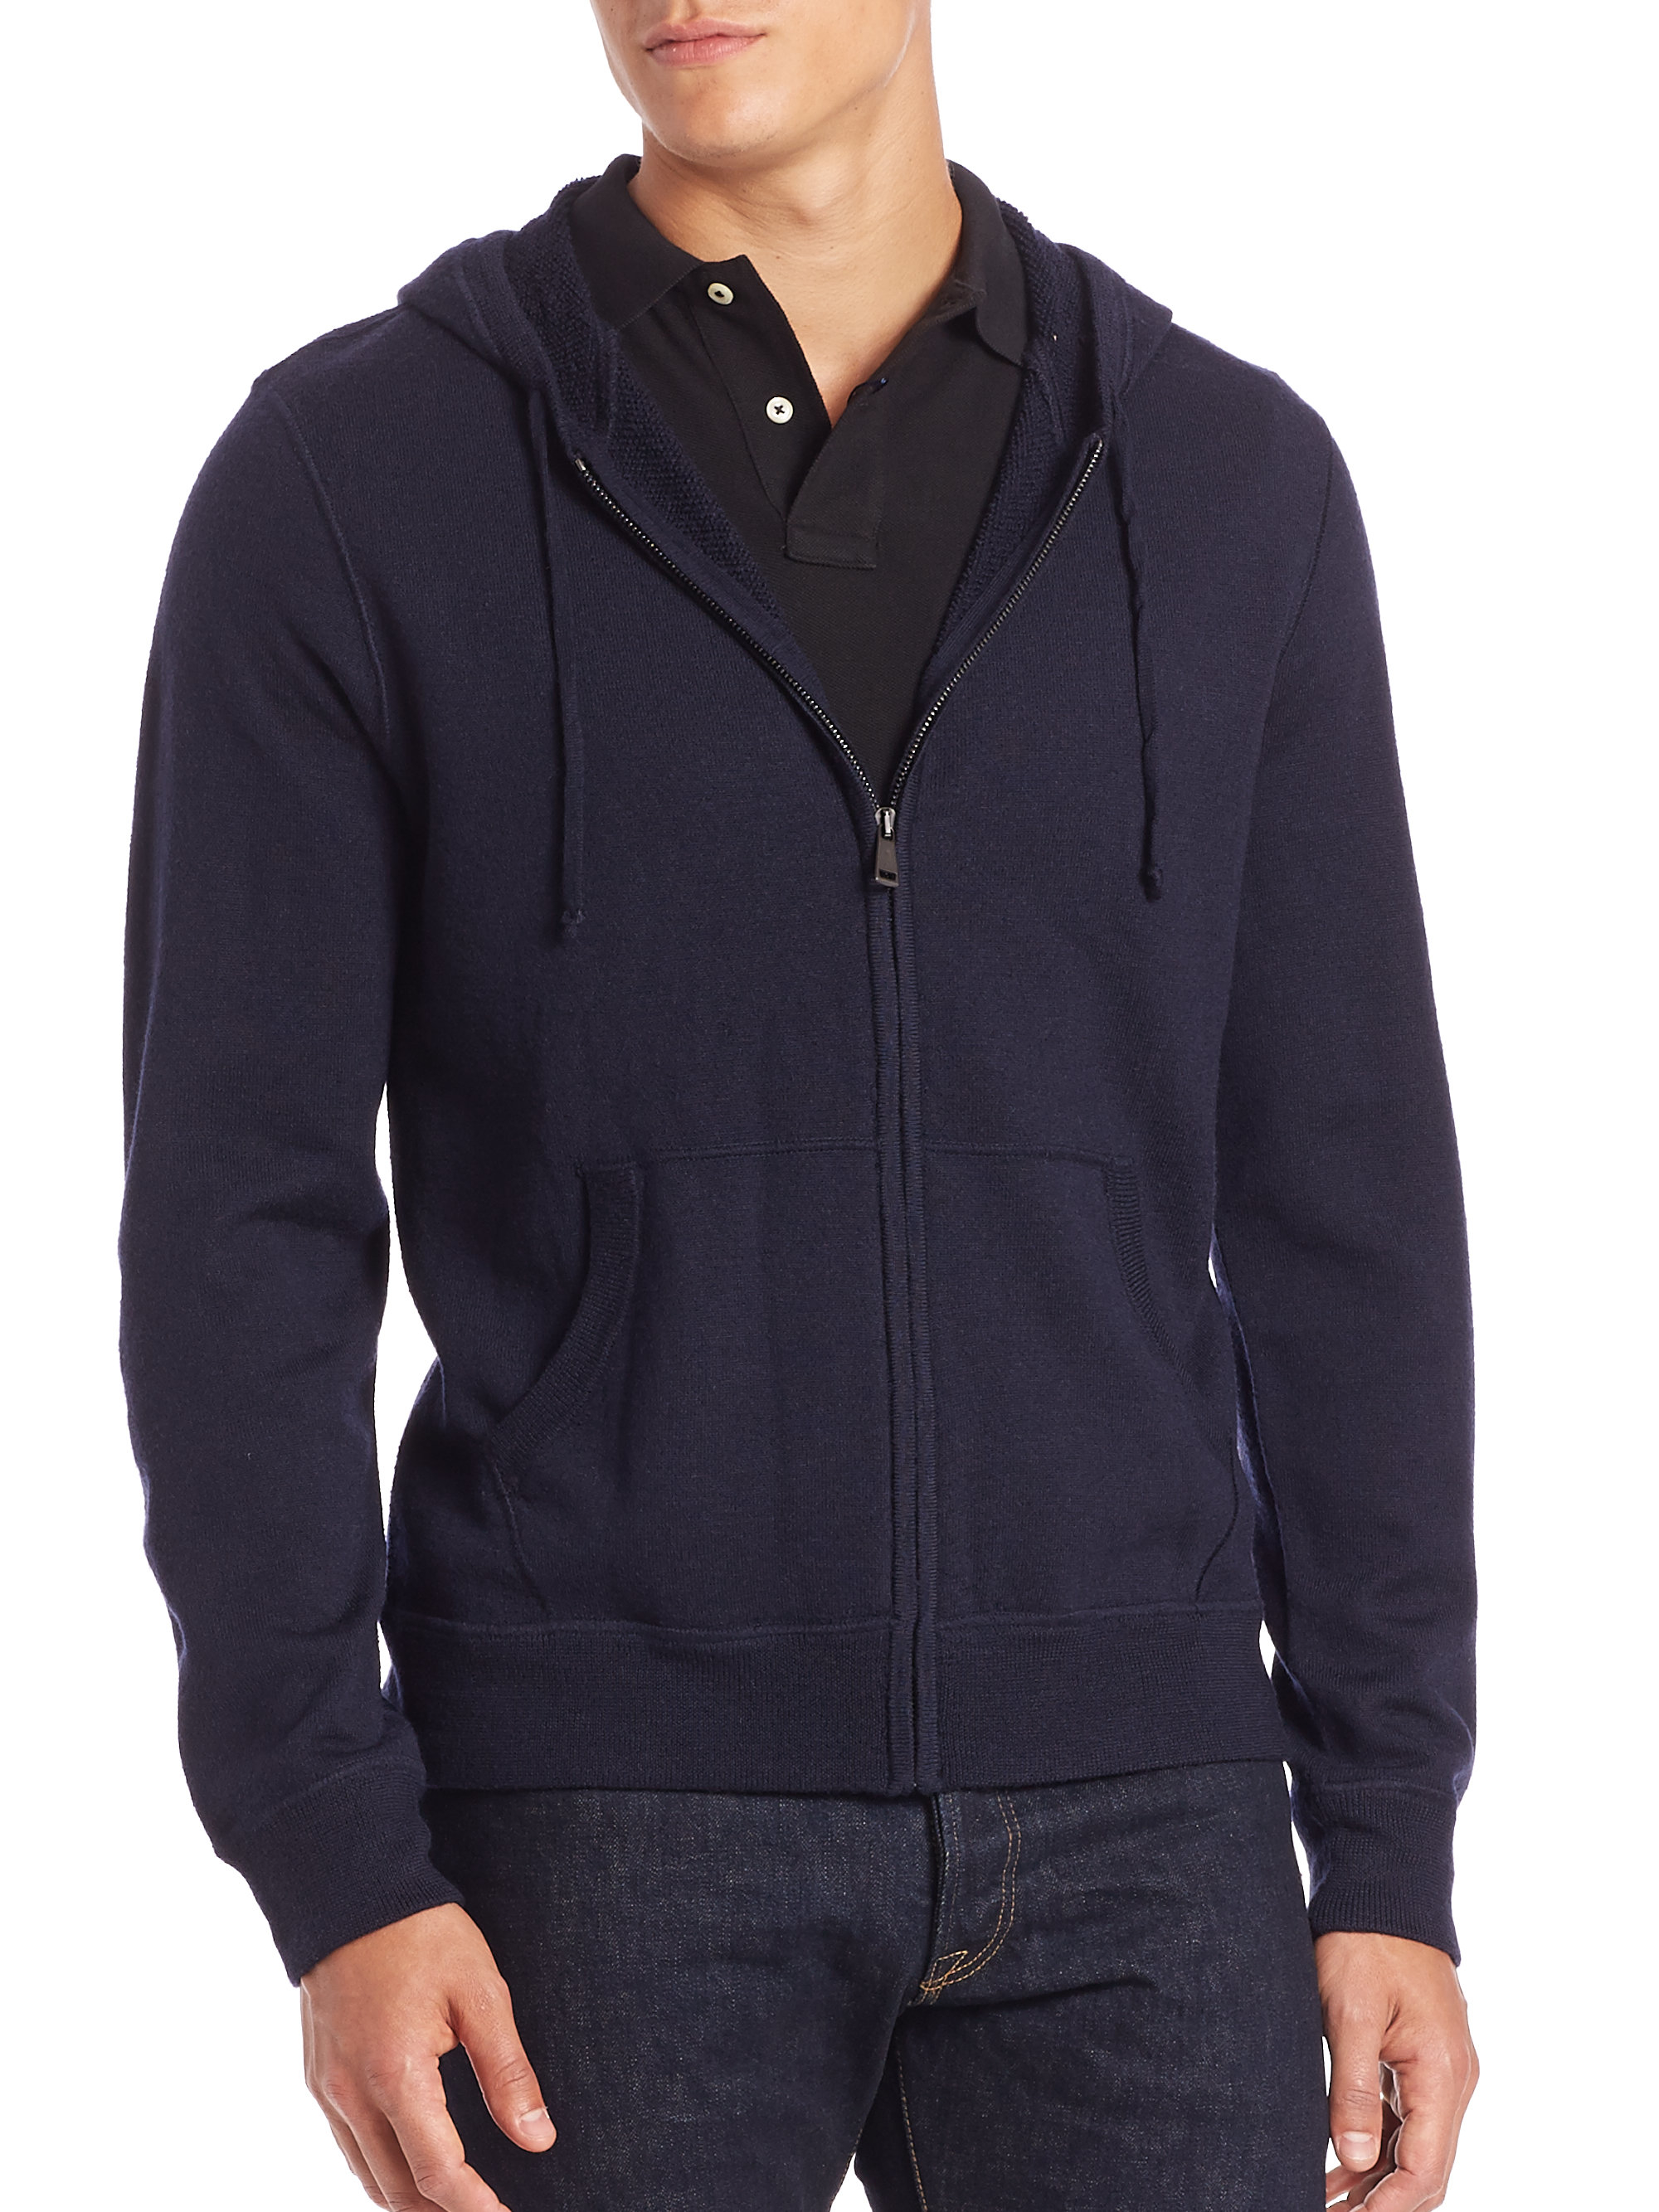 polo ralph lauren merino full zip hoodie in blue for men lyst. Black Bedroom Furniture Sets. Home Design Ideas